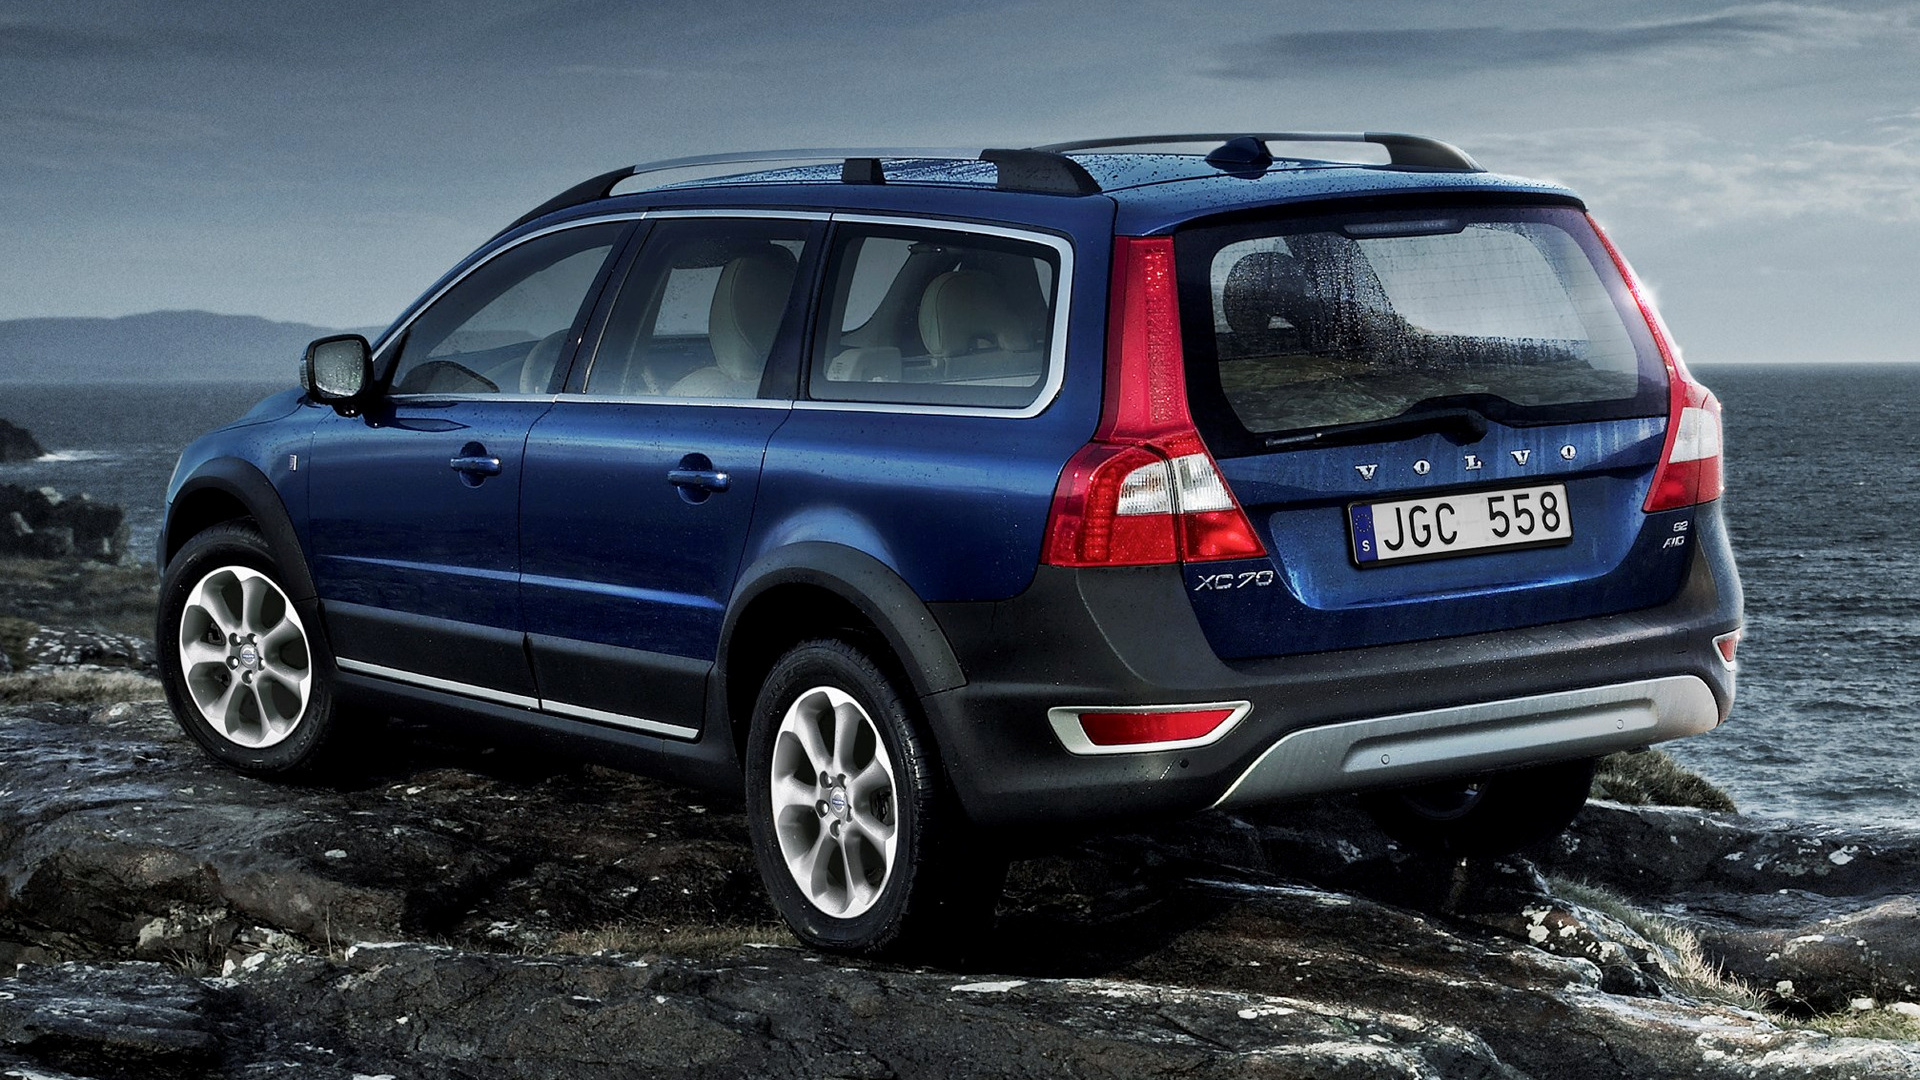 Volvo xc70 ocean race 2008 wallpapers and hd images car pixel